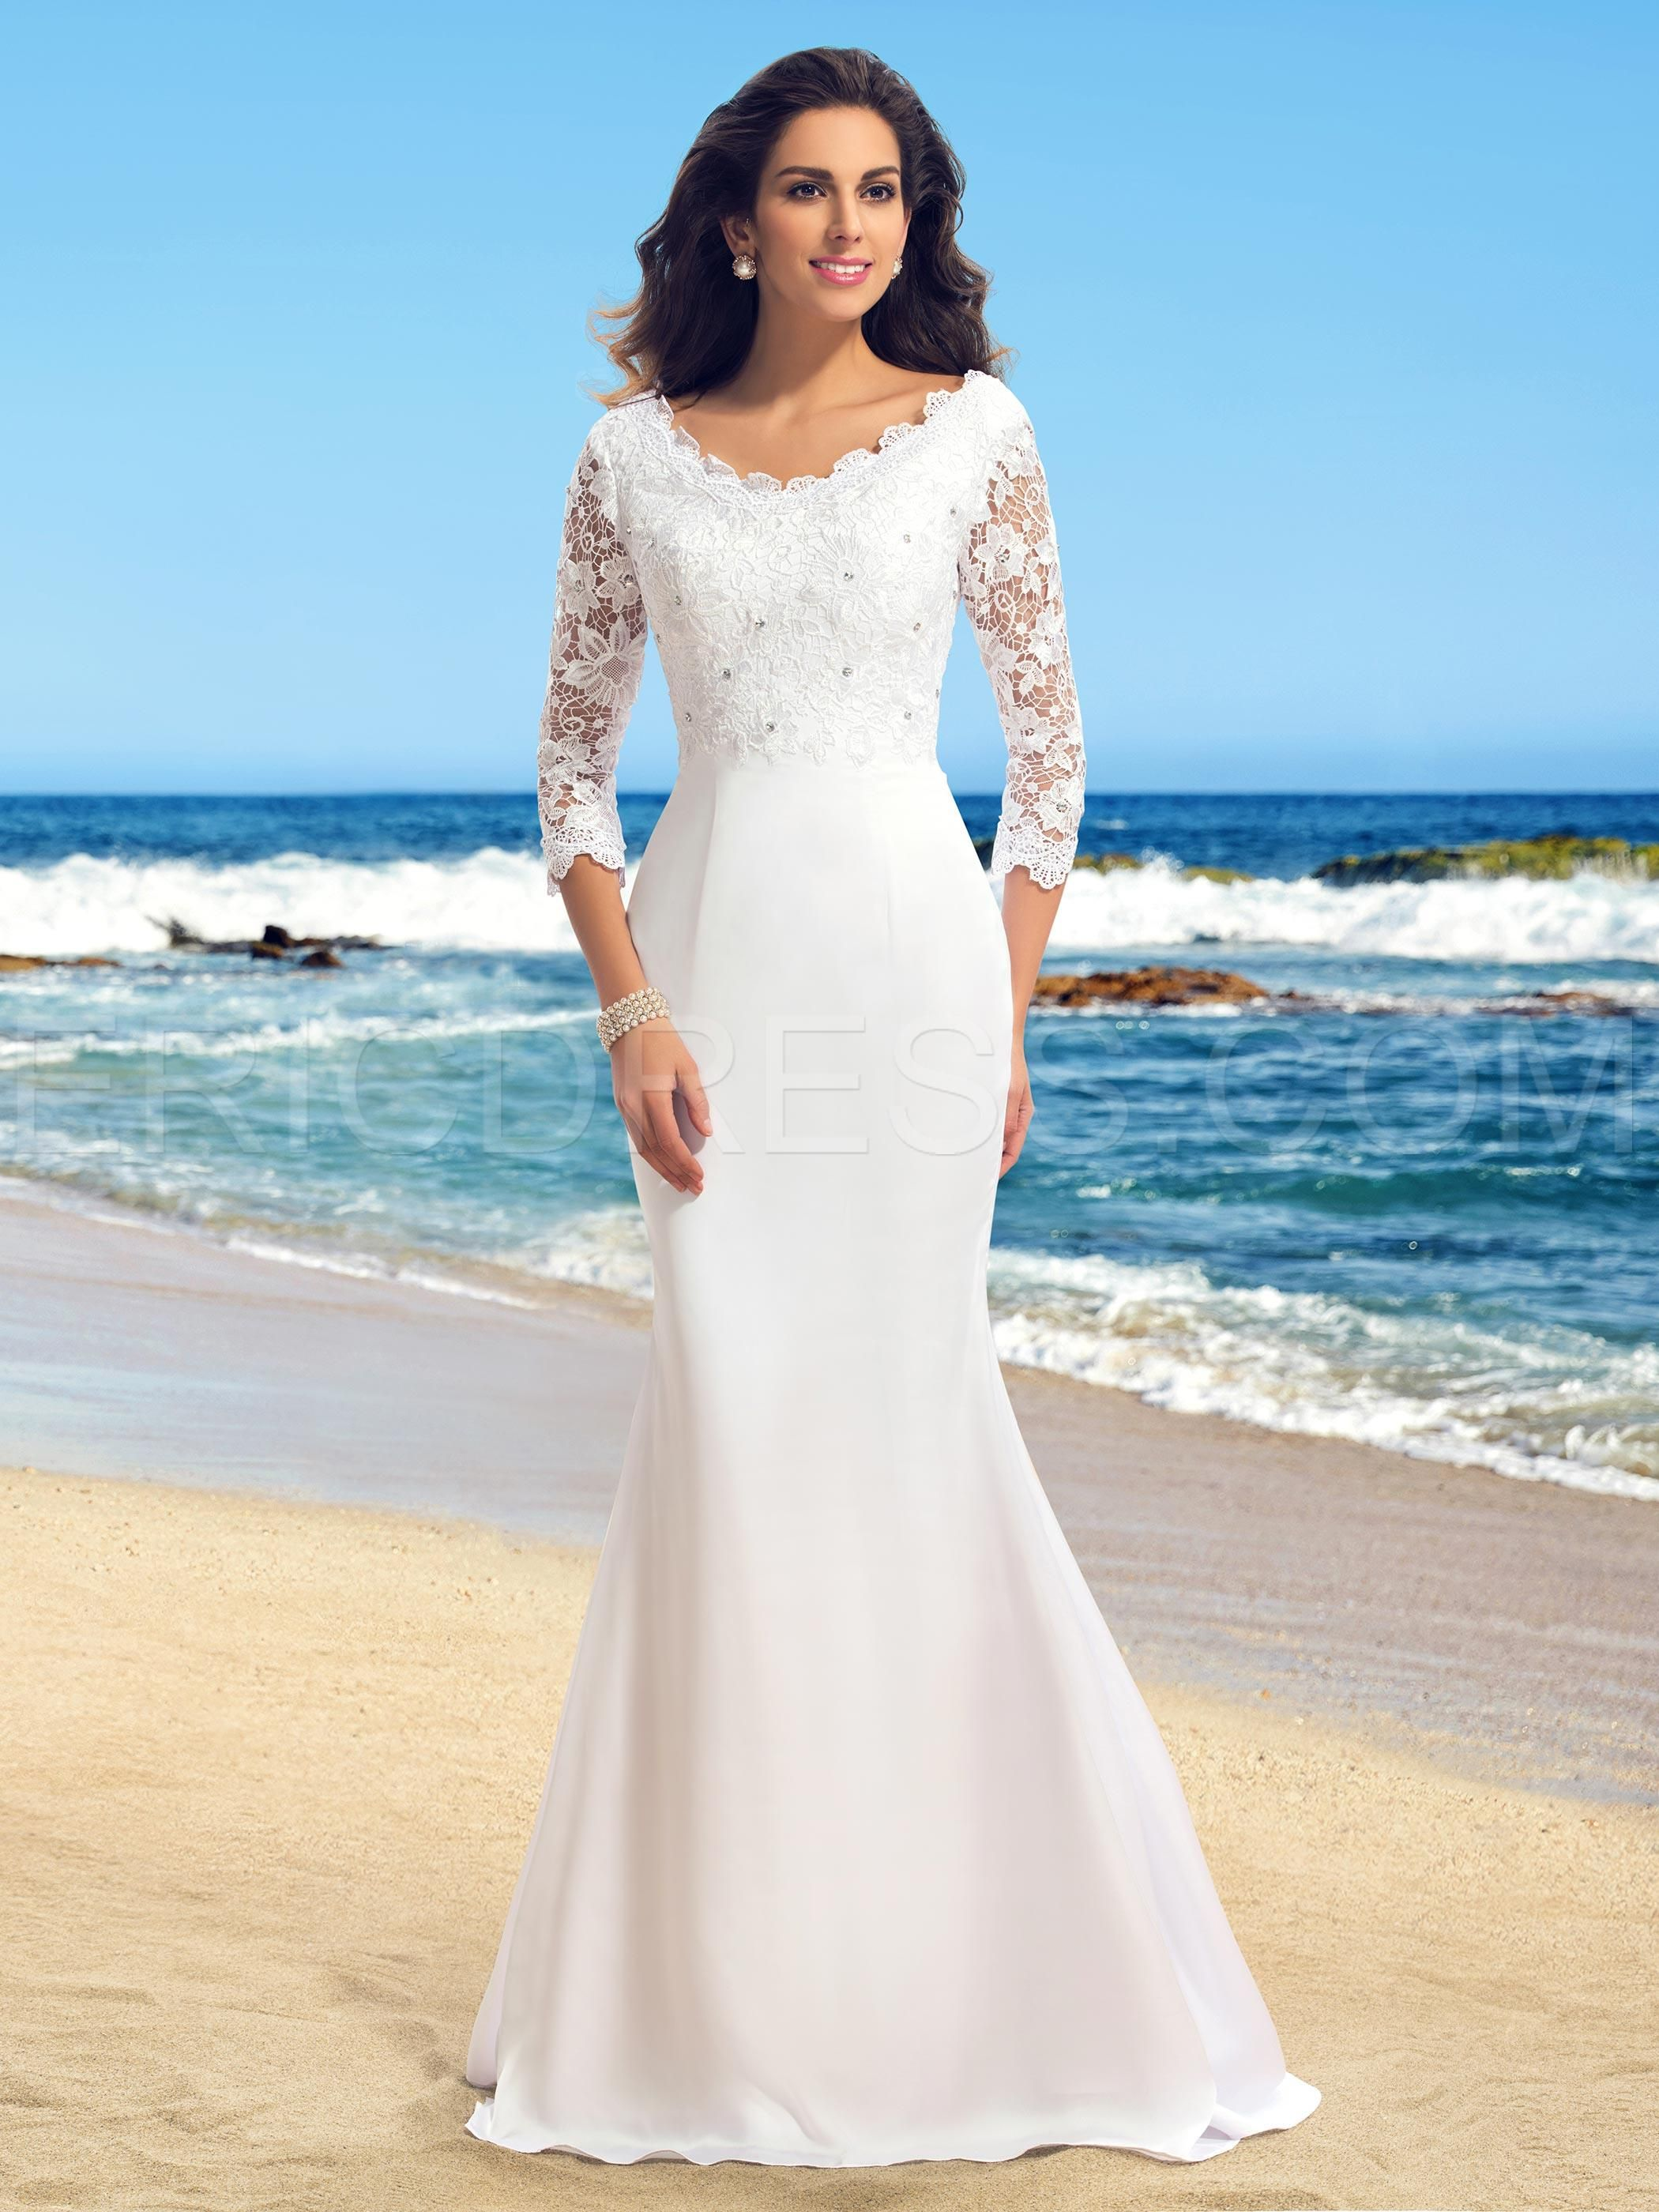 Long sleeve casual wedding dress  VNeck Lace Beading Mermaid Wedding Dress with Sleeves  Pinterest